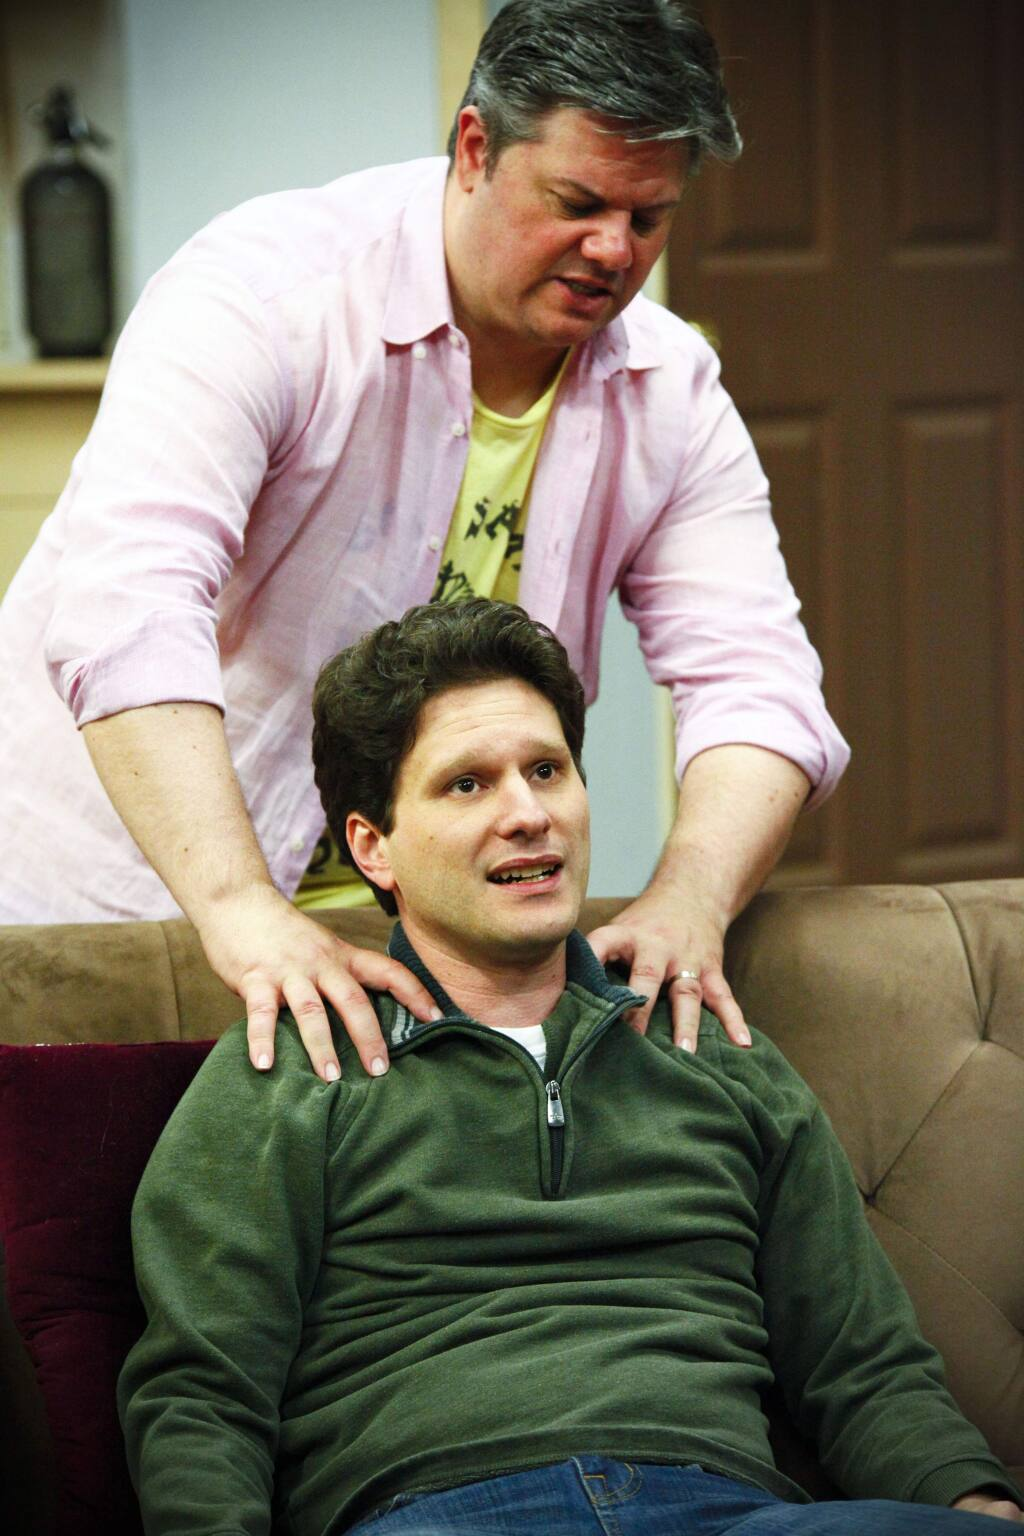 Petaluma, CA, USA. Wednesday, March 22, 2017._ Nathan Cummings (standing) as 'Oscar Madison' and Aaron Wilton as 'Felix Unger' at rehearsal for the production of 'The Odd Couple' at the Cinnabar Theatre. (CRISSY PASCUAL/ARGUS-COURIER STAFF)